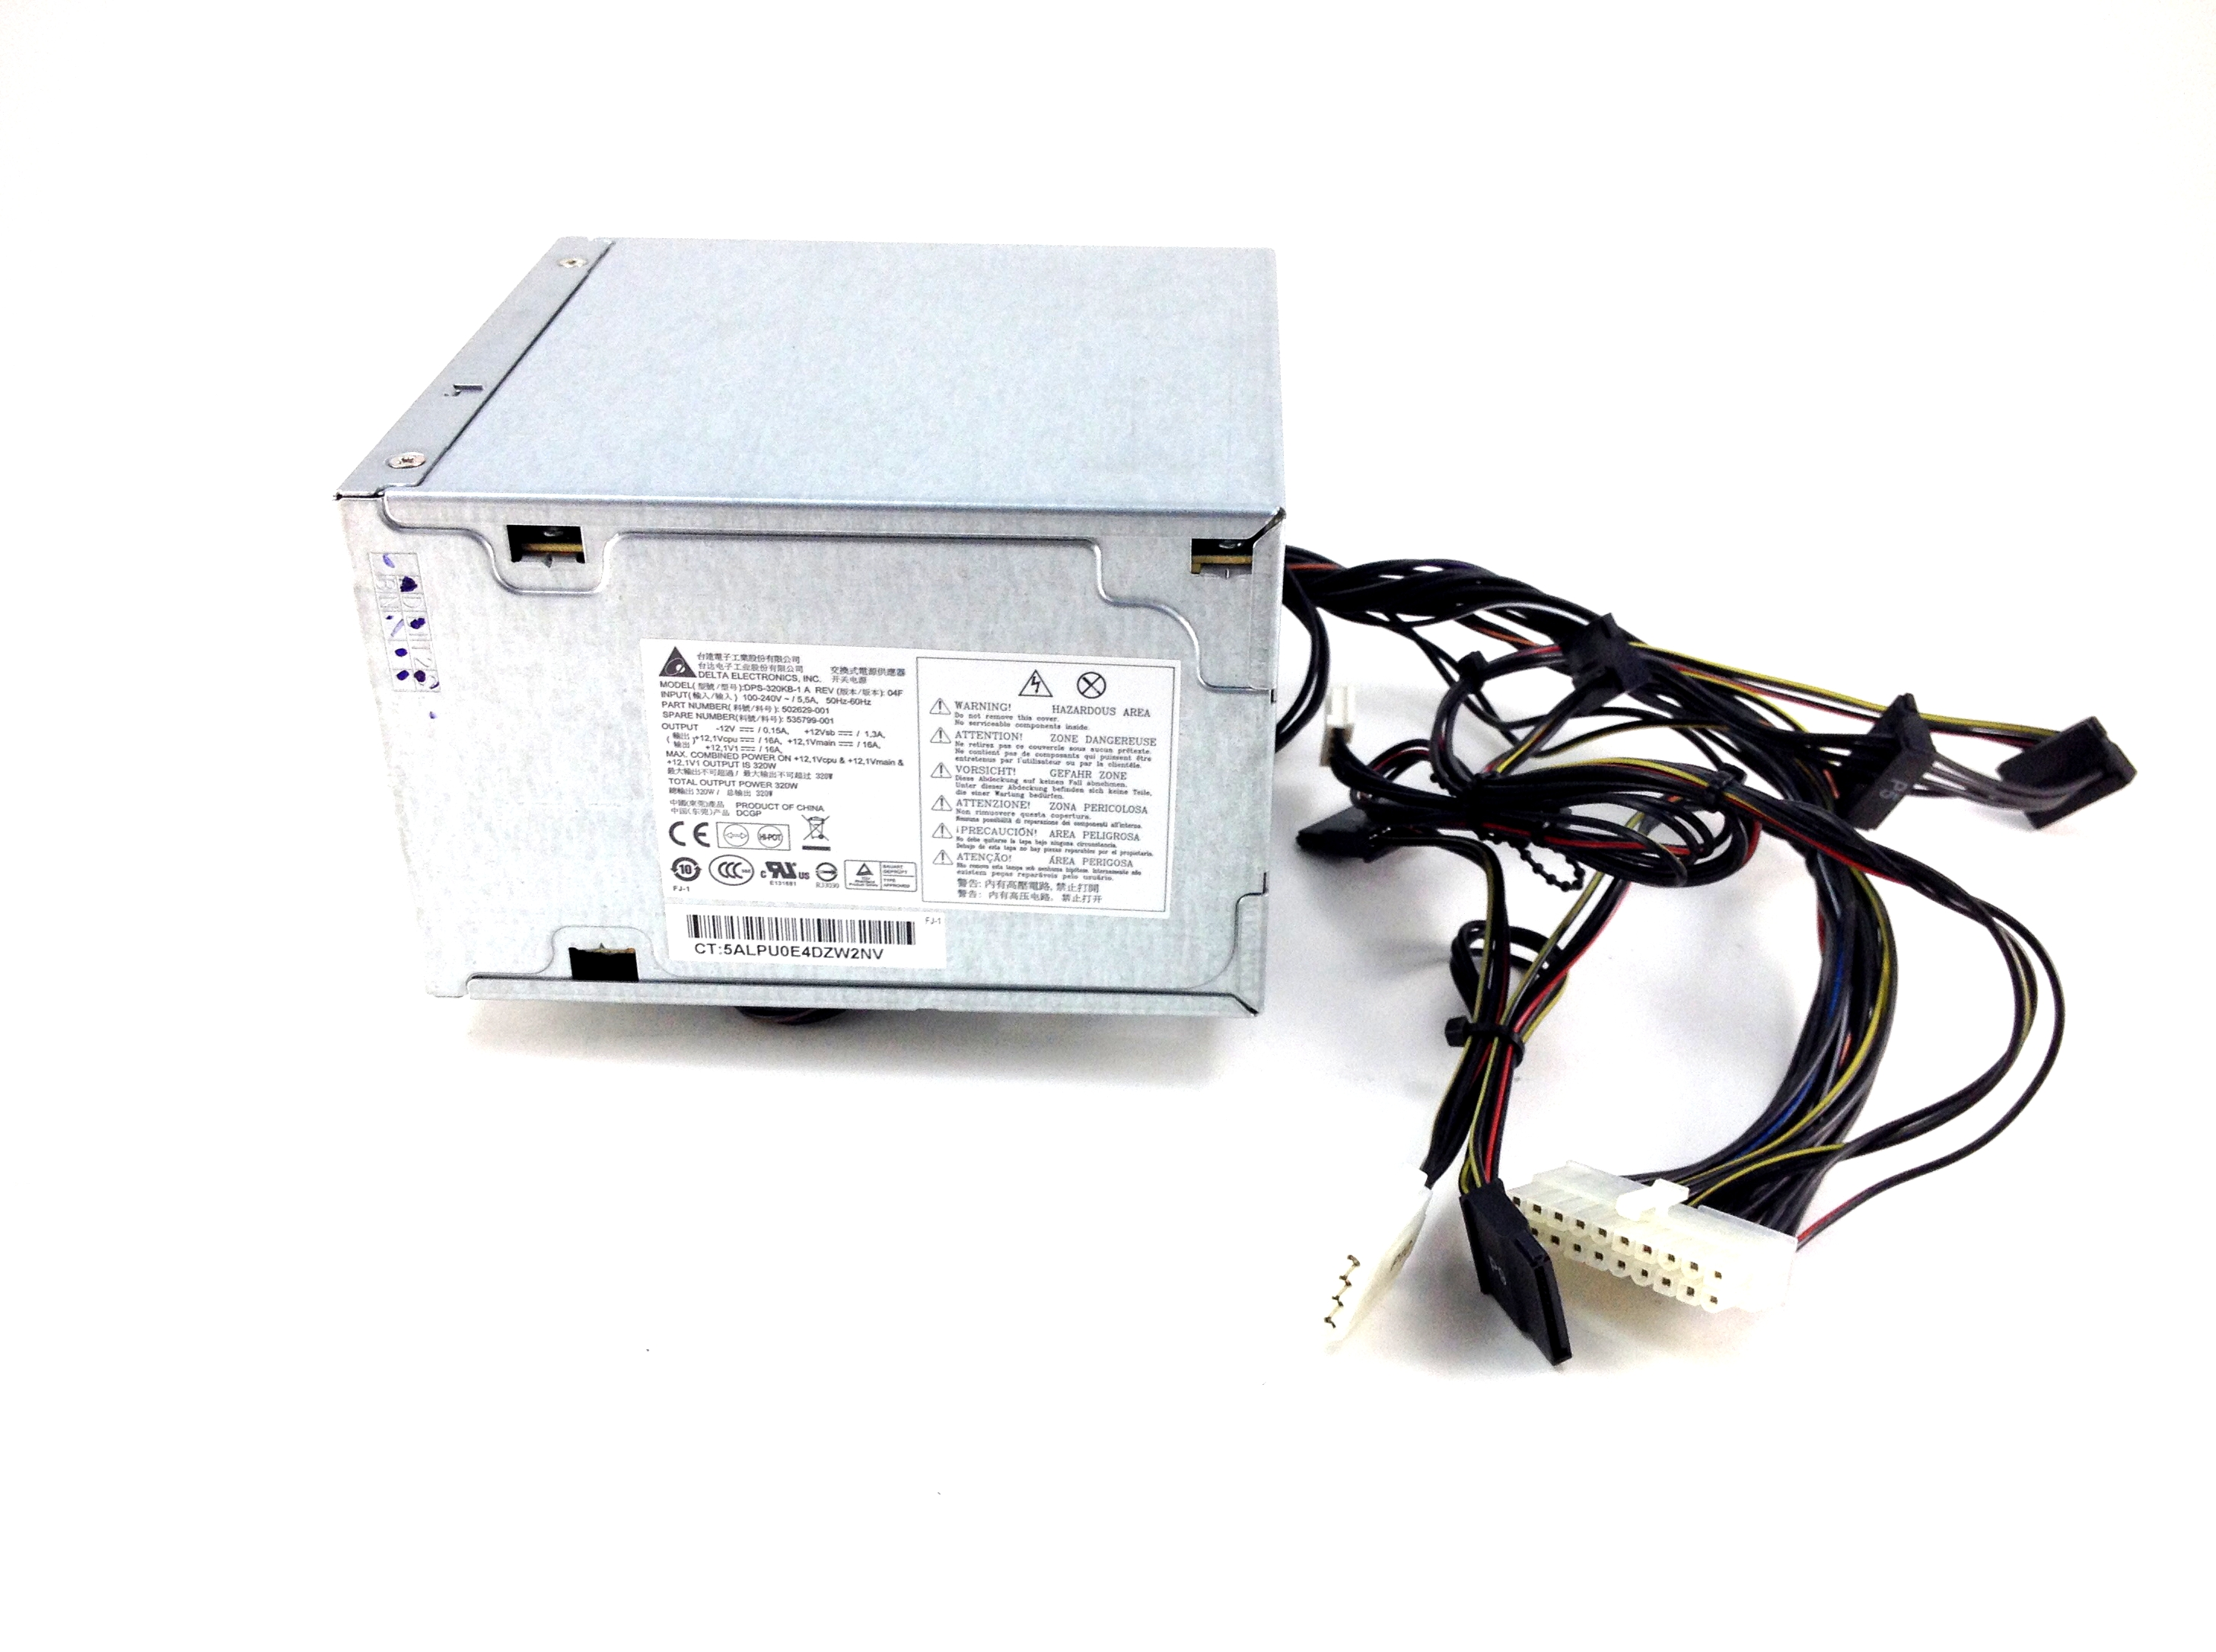 HP Z200 WorkStation 320W Delta Power Supply (535799-001)